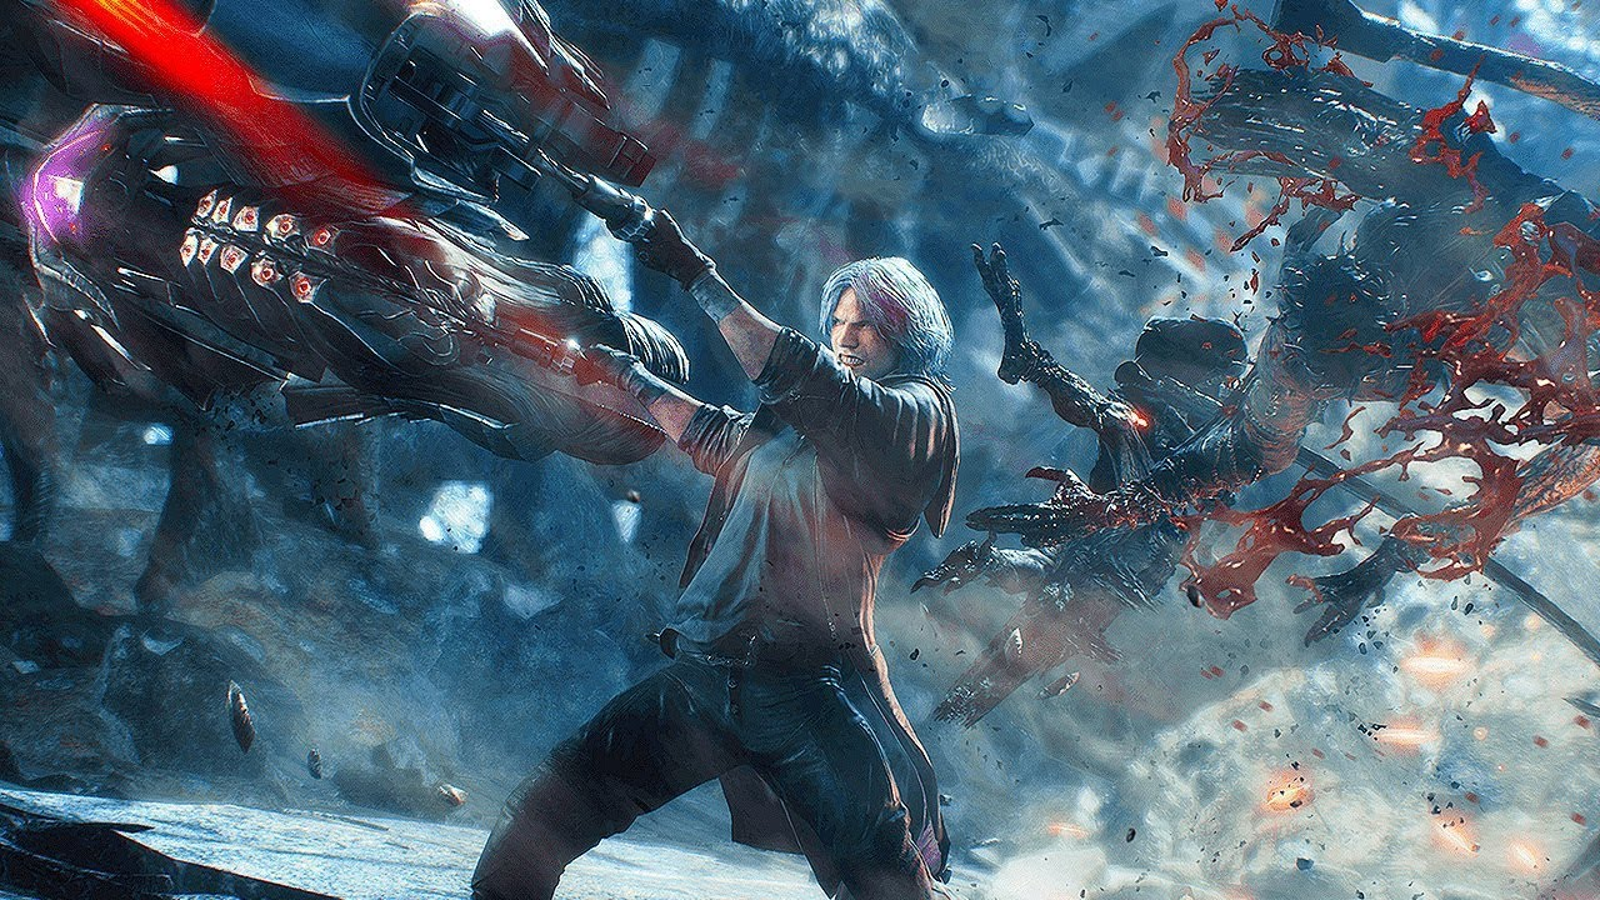 Capcom Pulls Devil May Cry 5 Battle Theme After Allegations Surface About Lead Singer